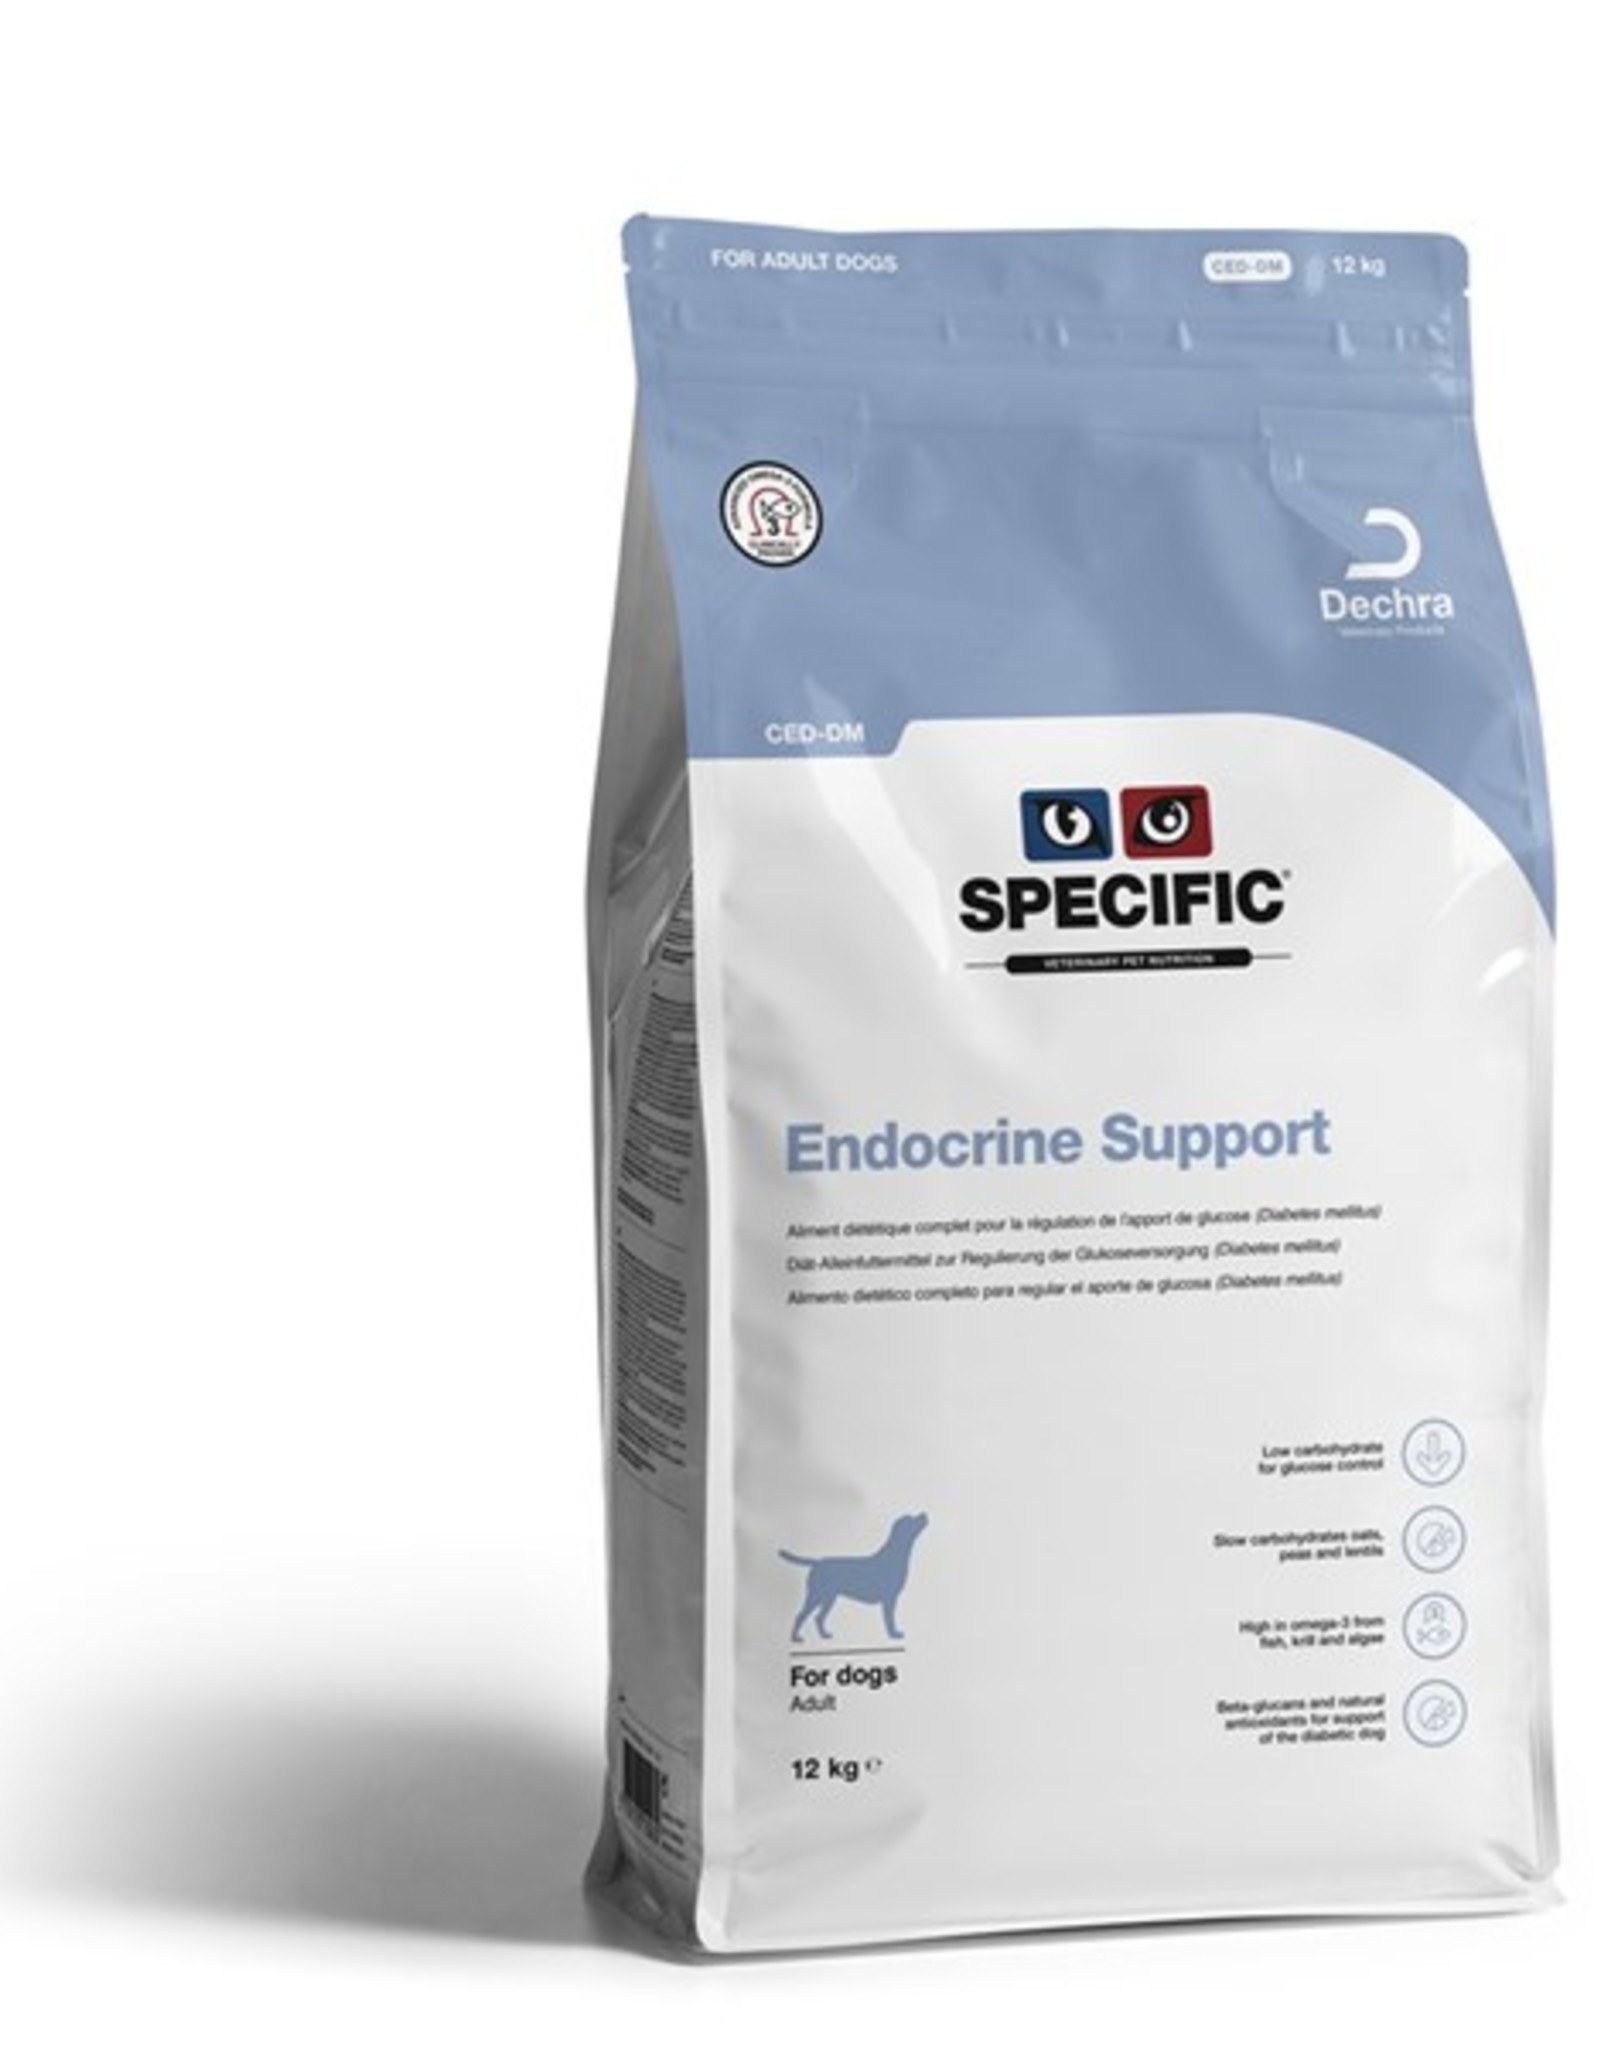 Specific Specific Ced Endocrine Support 2kg